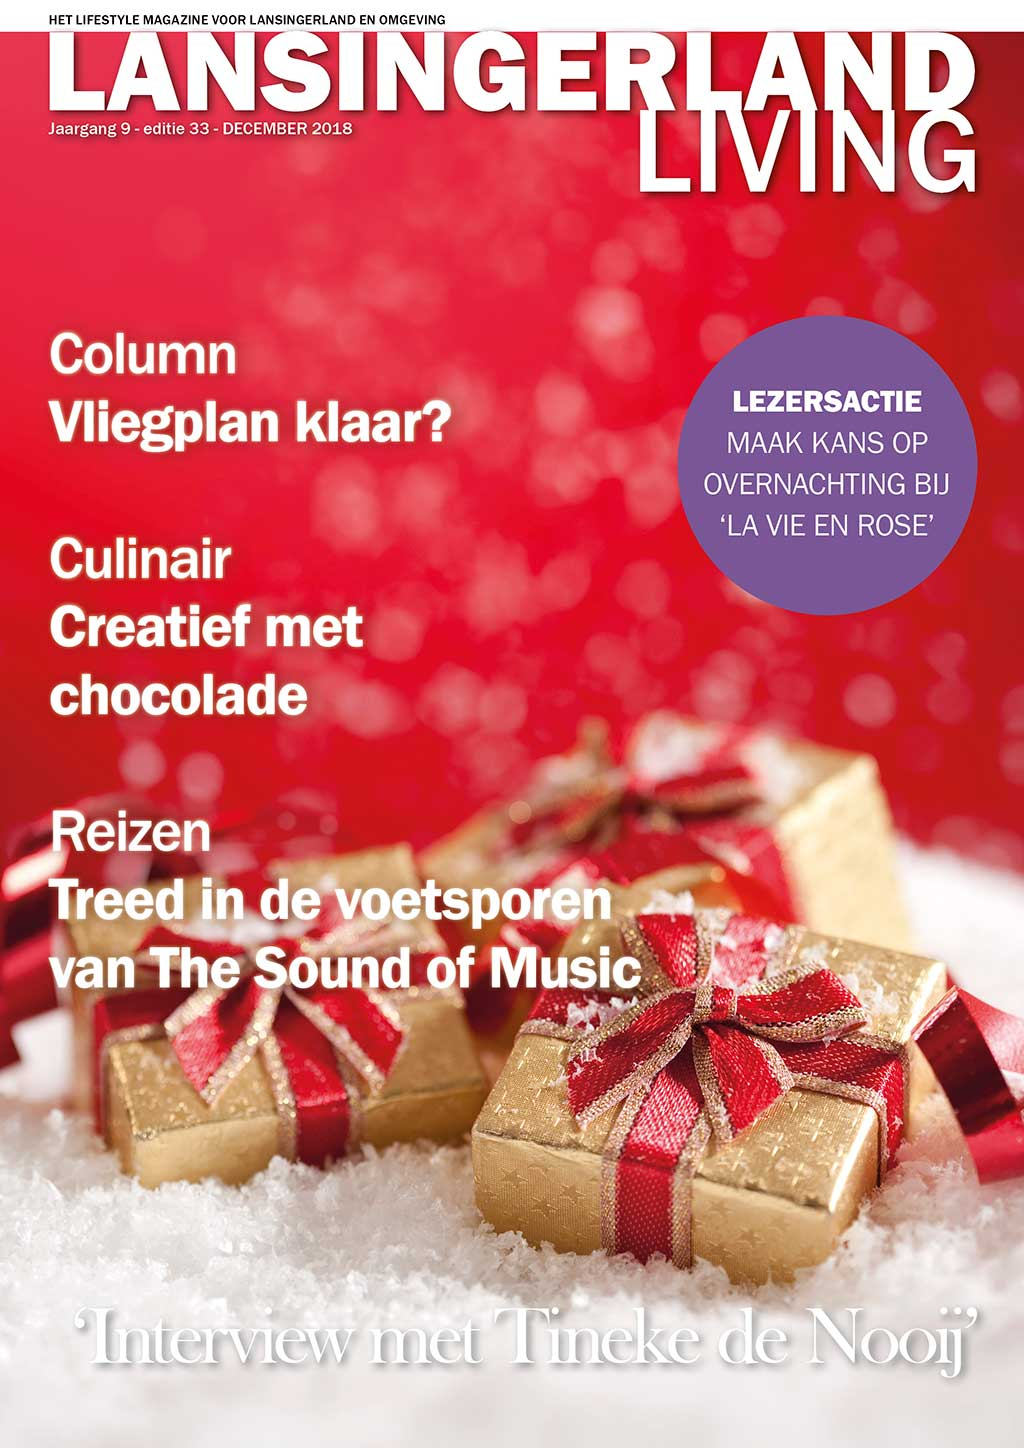 Cover Lansingerland Living editie 33 - december 2018